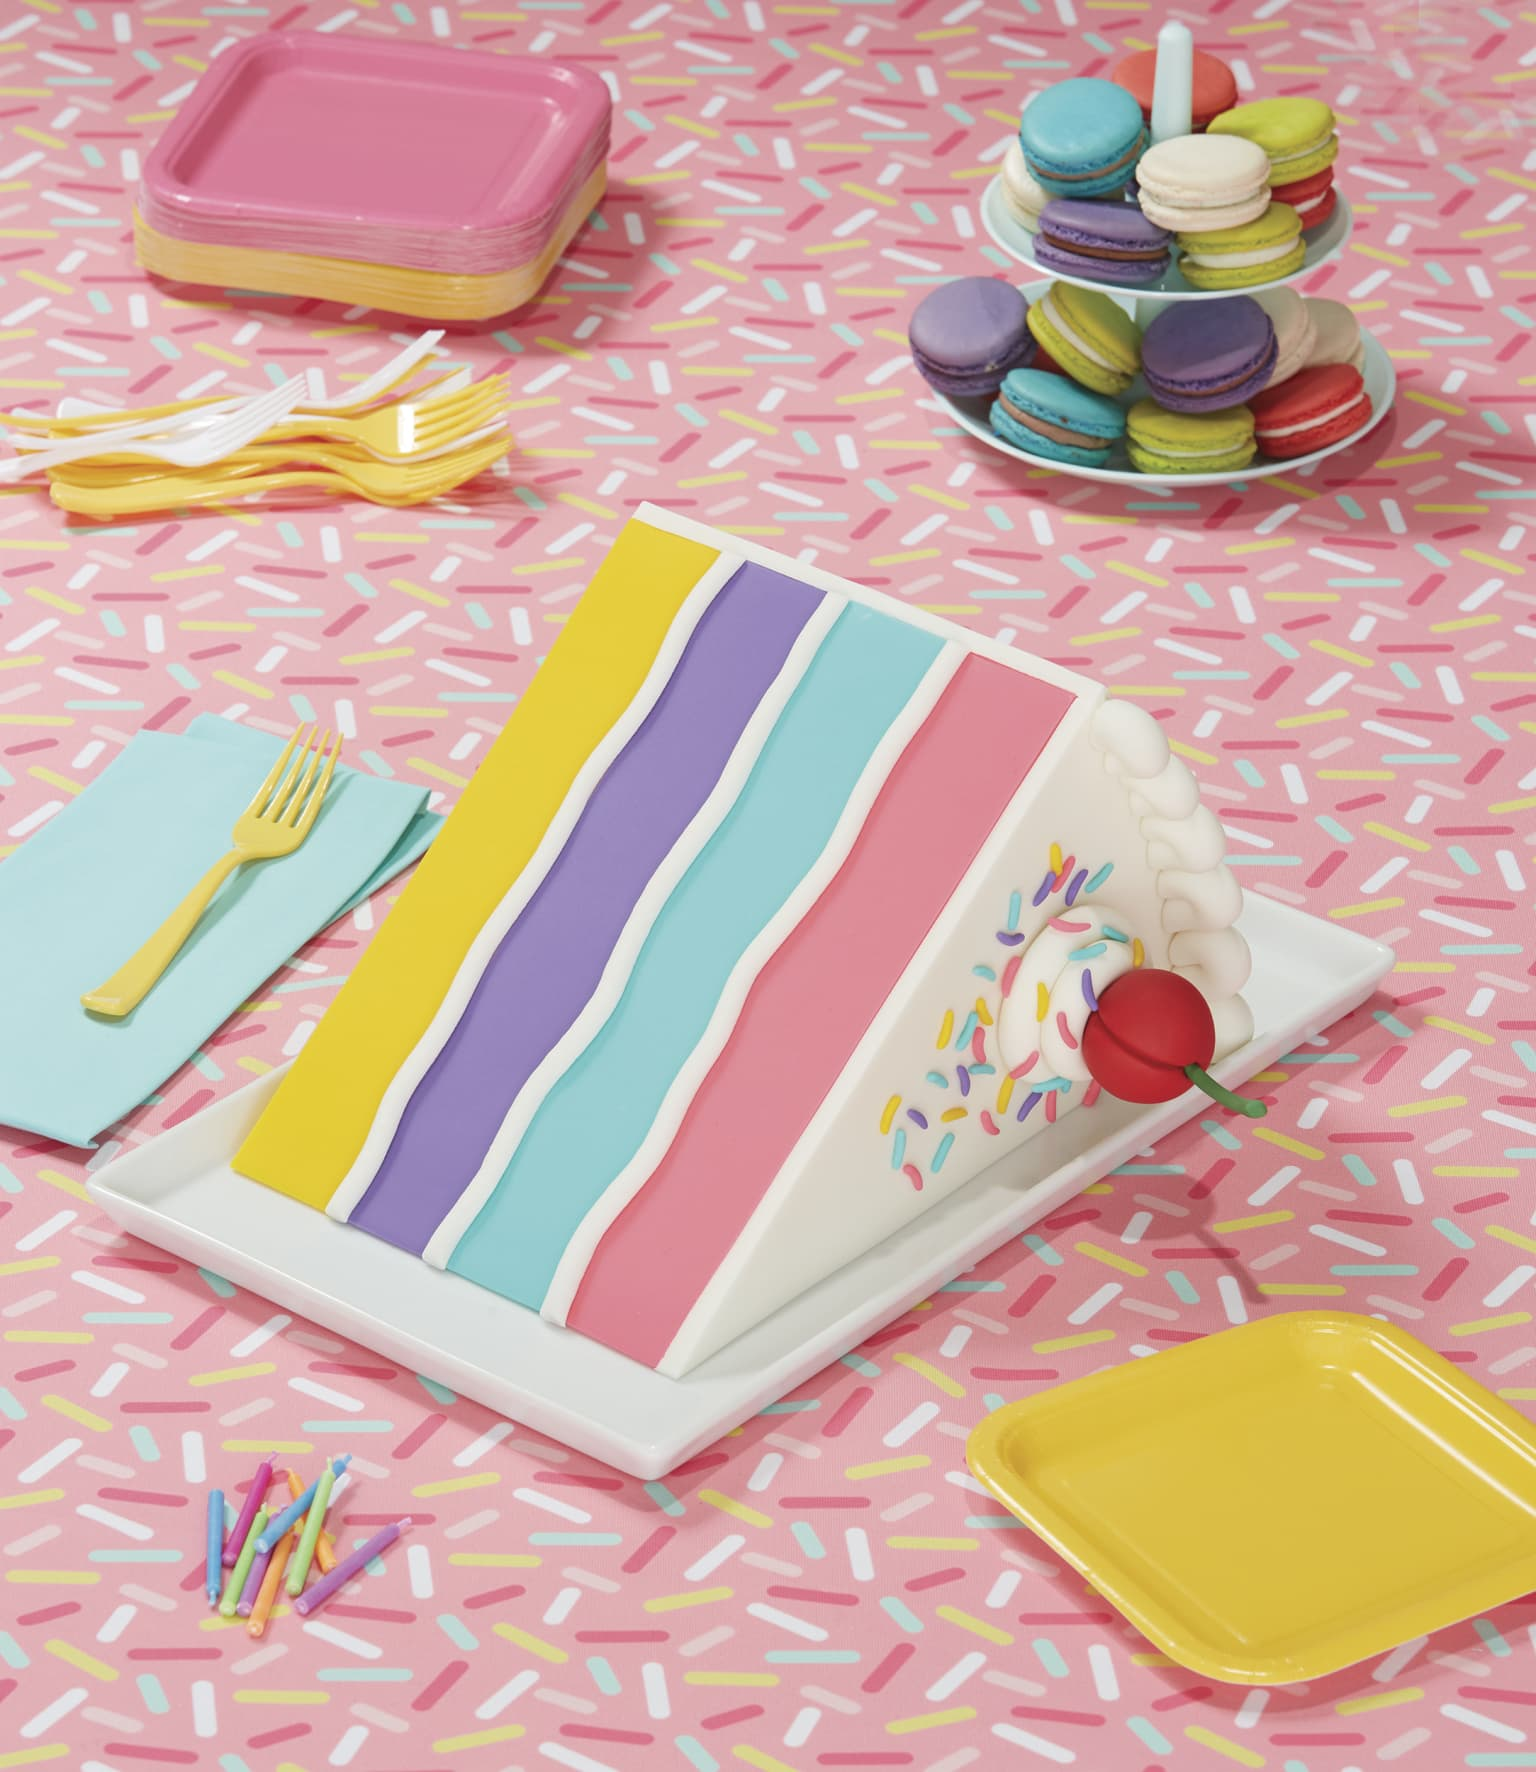 How To Cake It - Cakebook